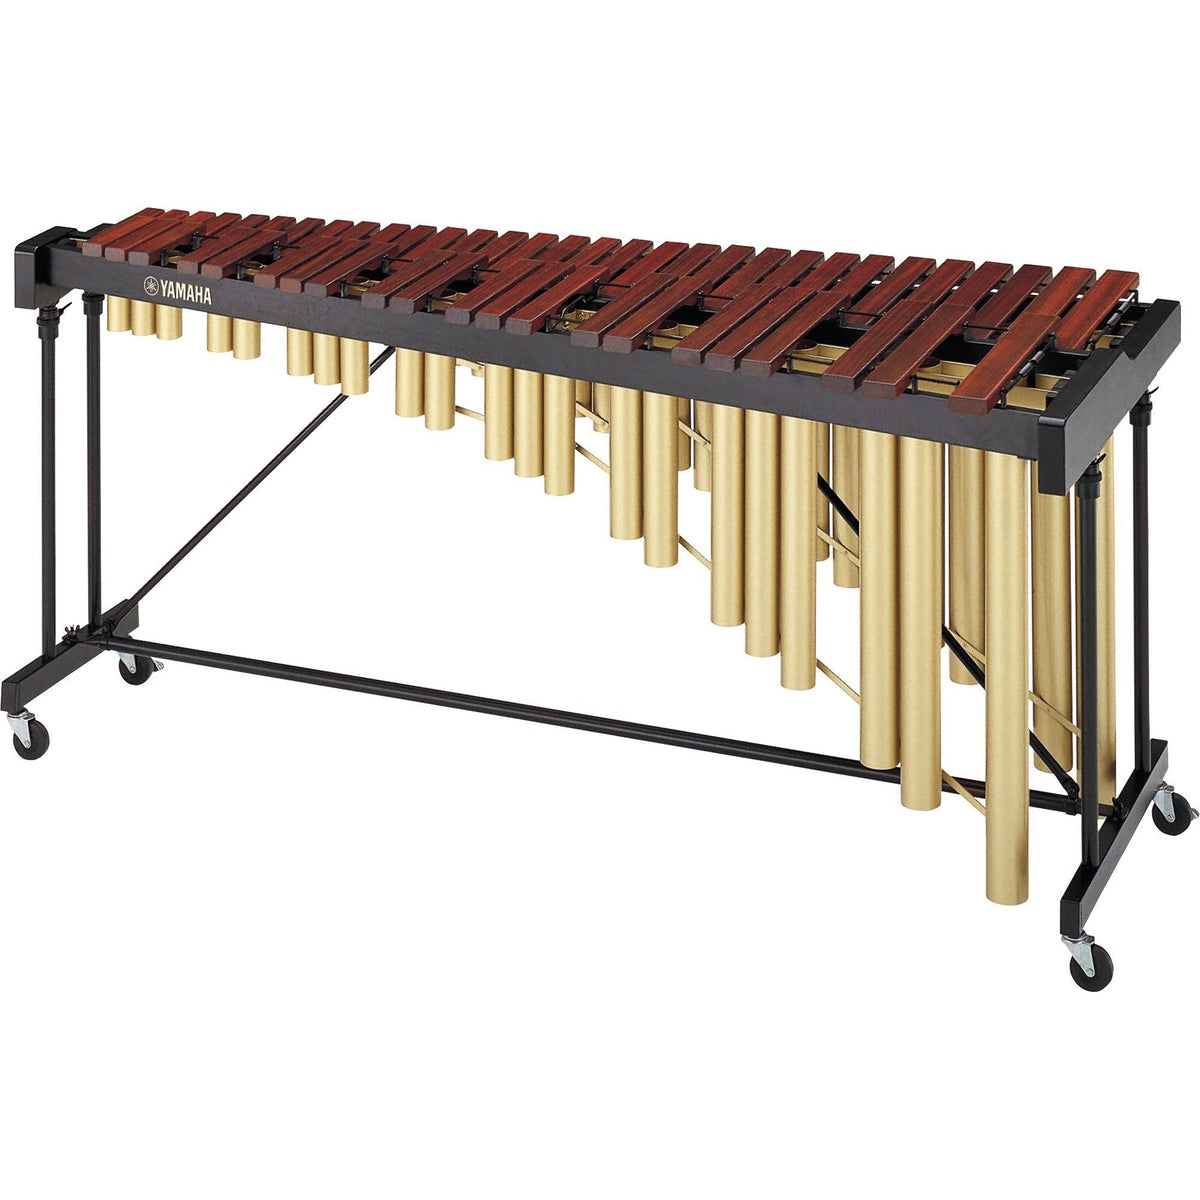 Yamaha - YM-1430 - Marimba (4 1/3-Octave)-Percussion-Yamaha-Music Elements